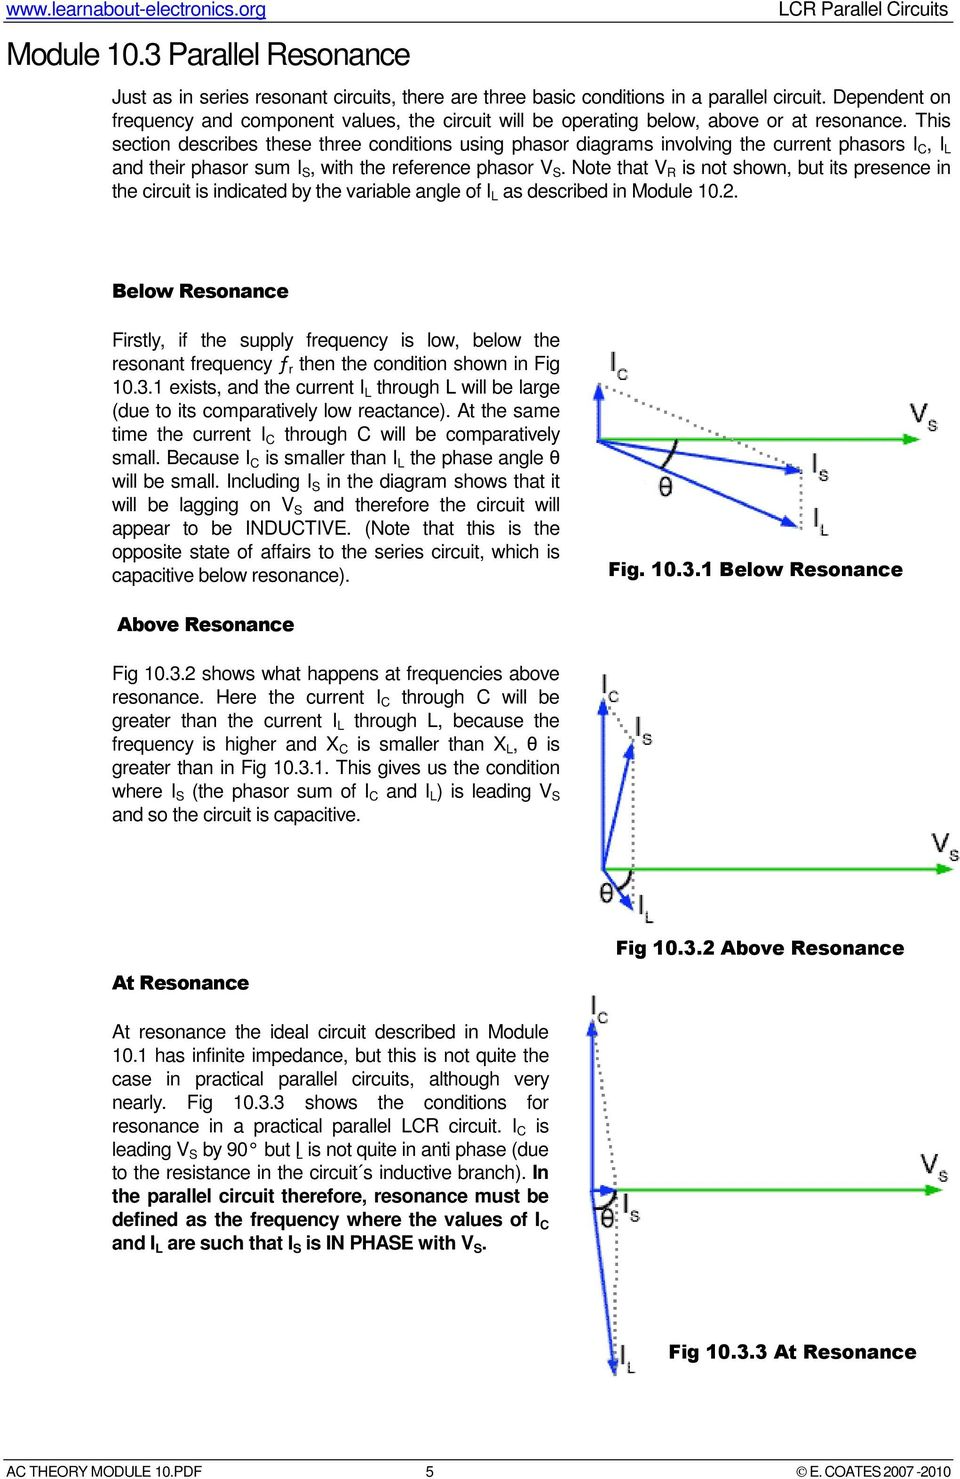 Lcr Parallel Circuits Pdf Basic Principles Of The Lc Resonance Circuit This Section Describes These Three Conditions Using Phasor Diagrams Involving Current Phasors I C L